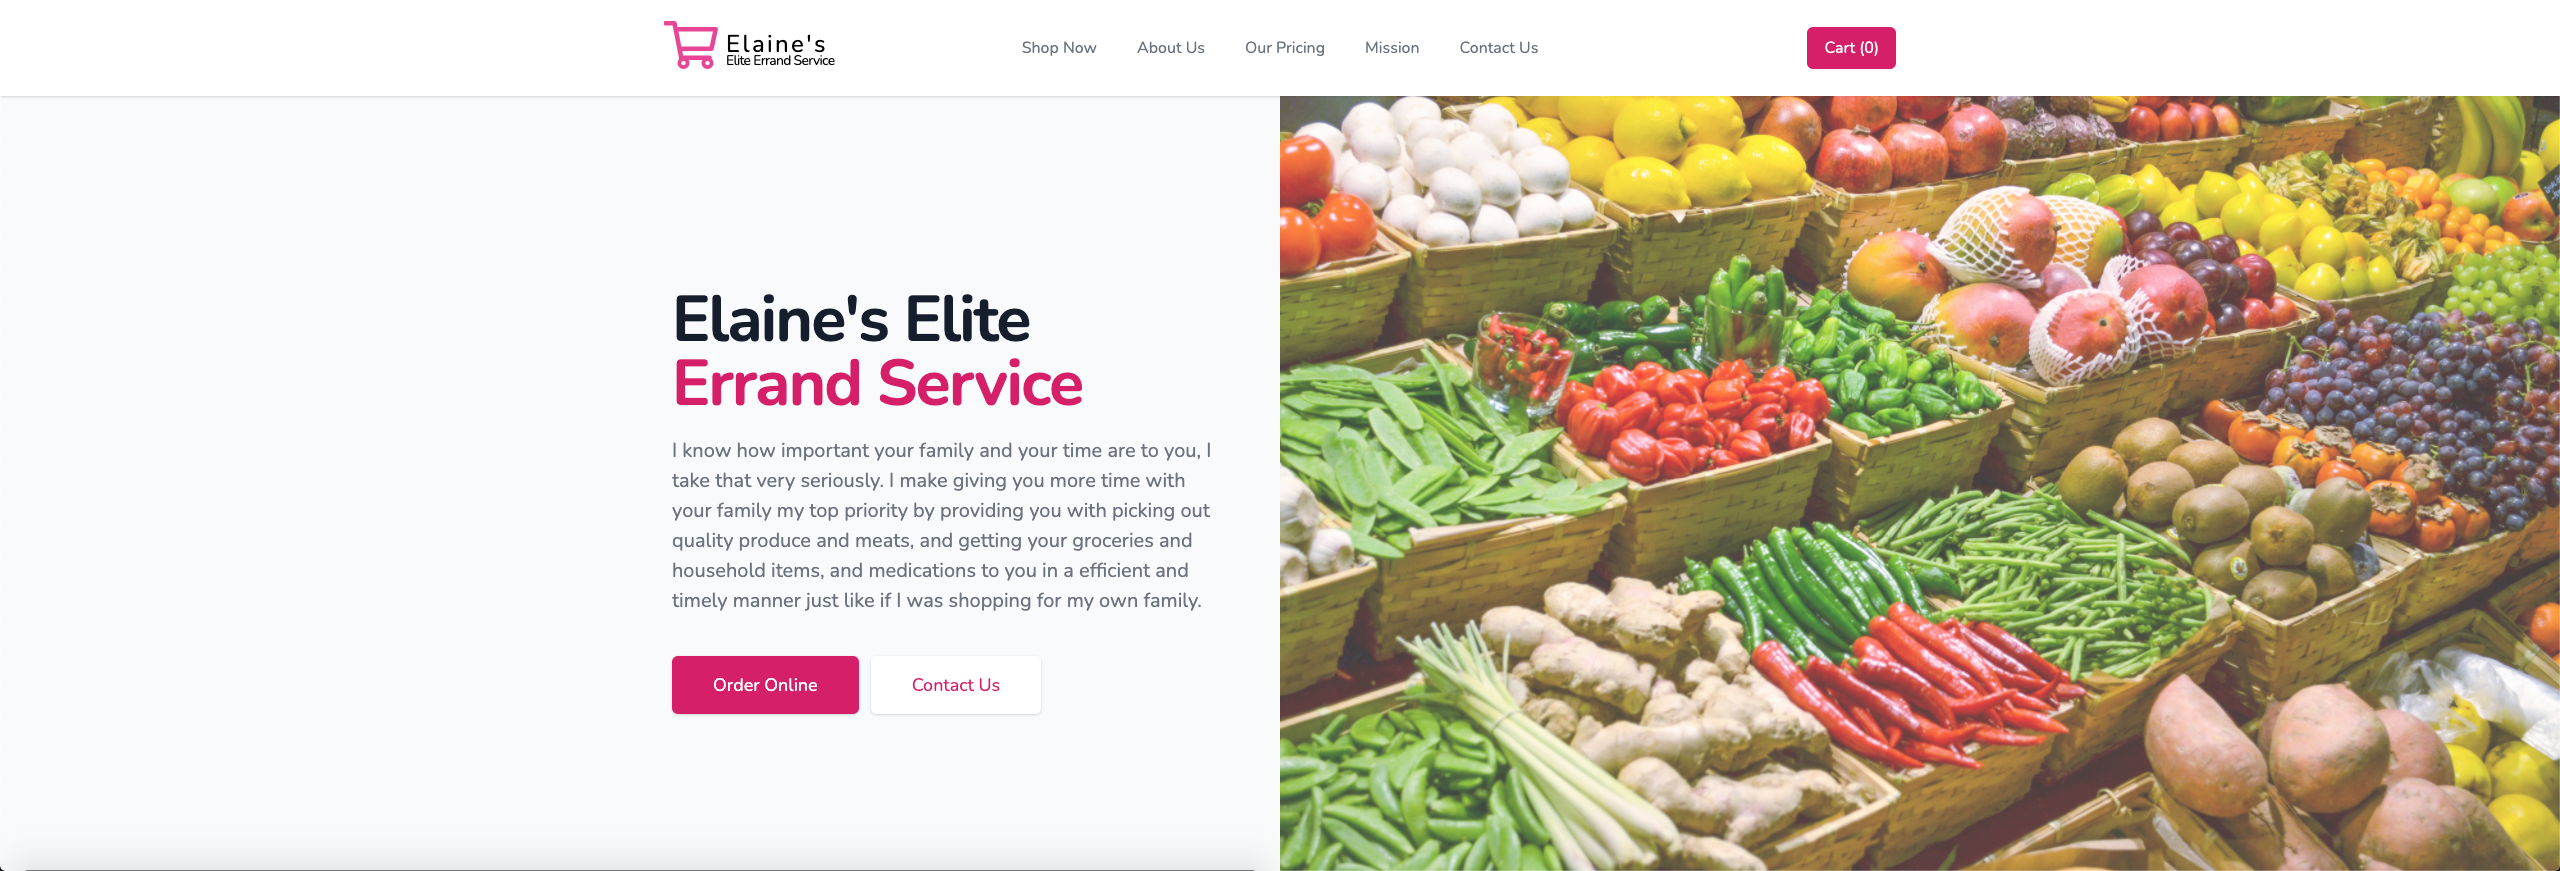 Elaine's Elite Errand Service Website Launched